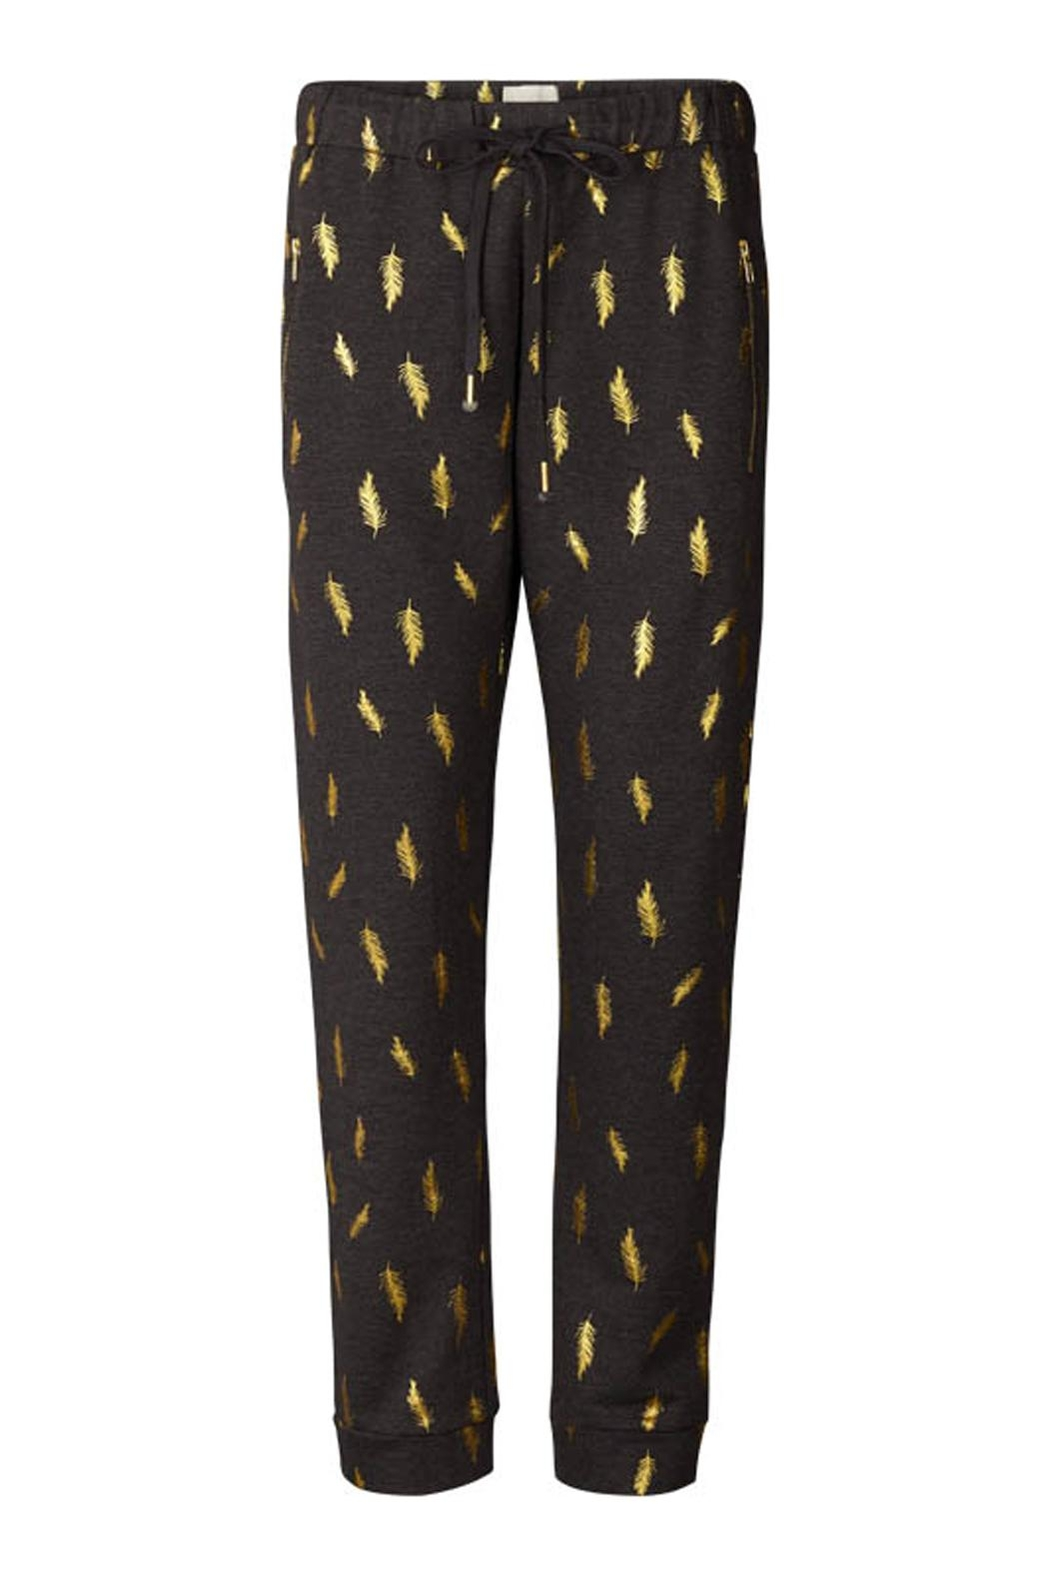 LOLLYS LAUNDRY Gold Feathered Sweatpants - Main Image